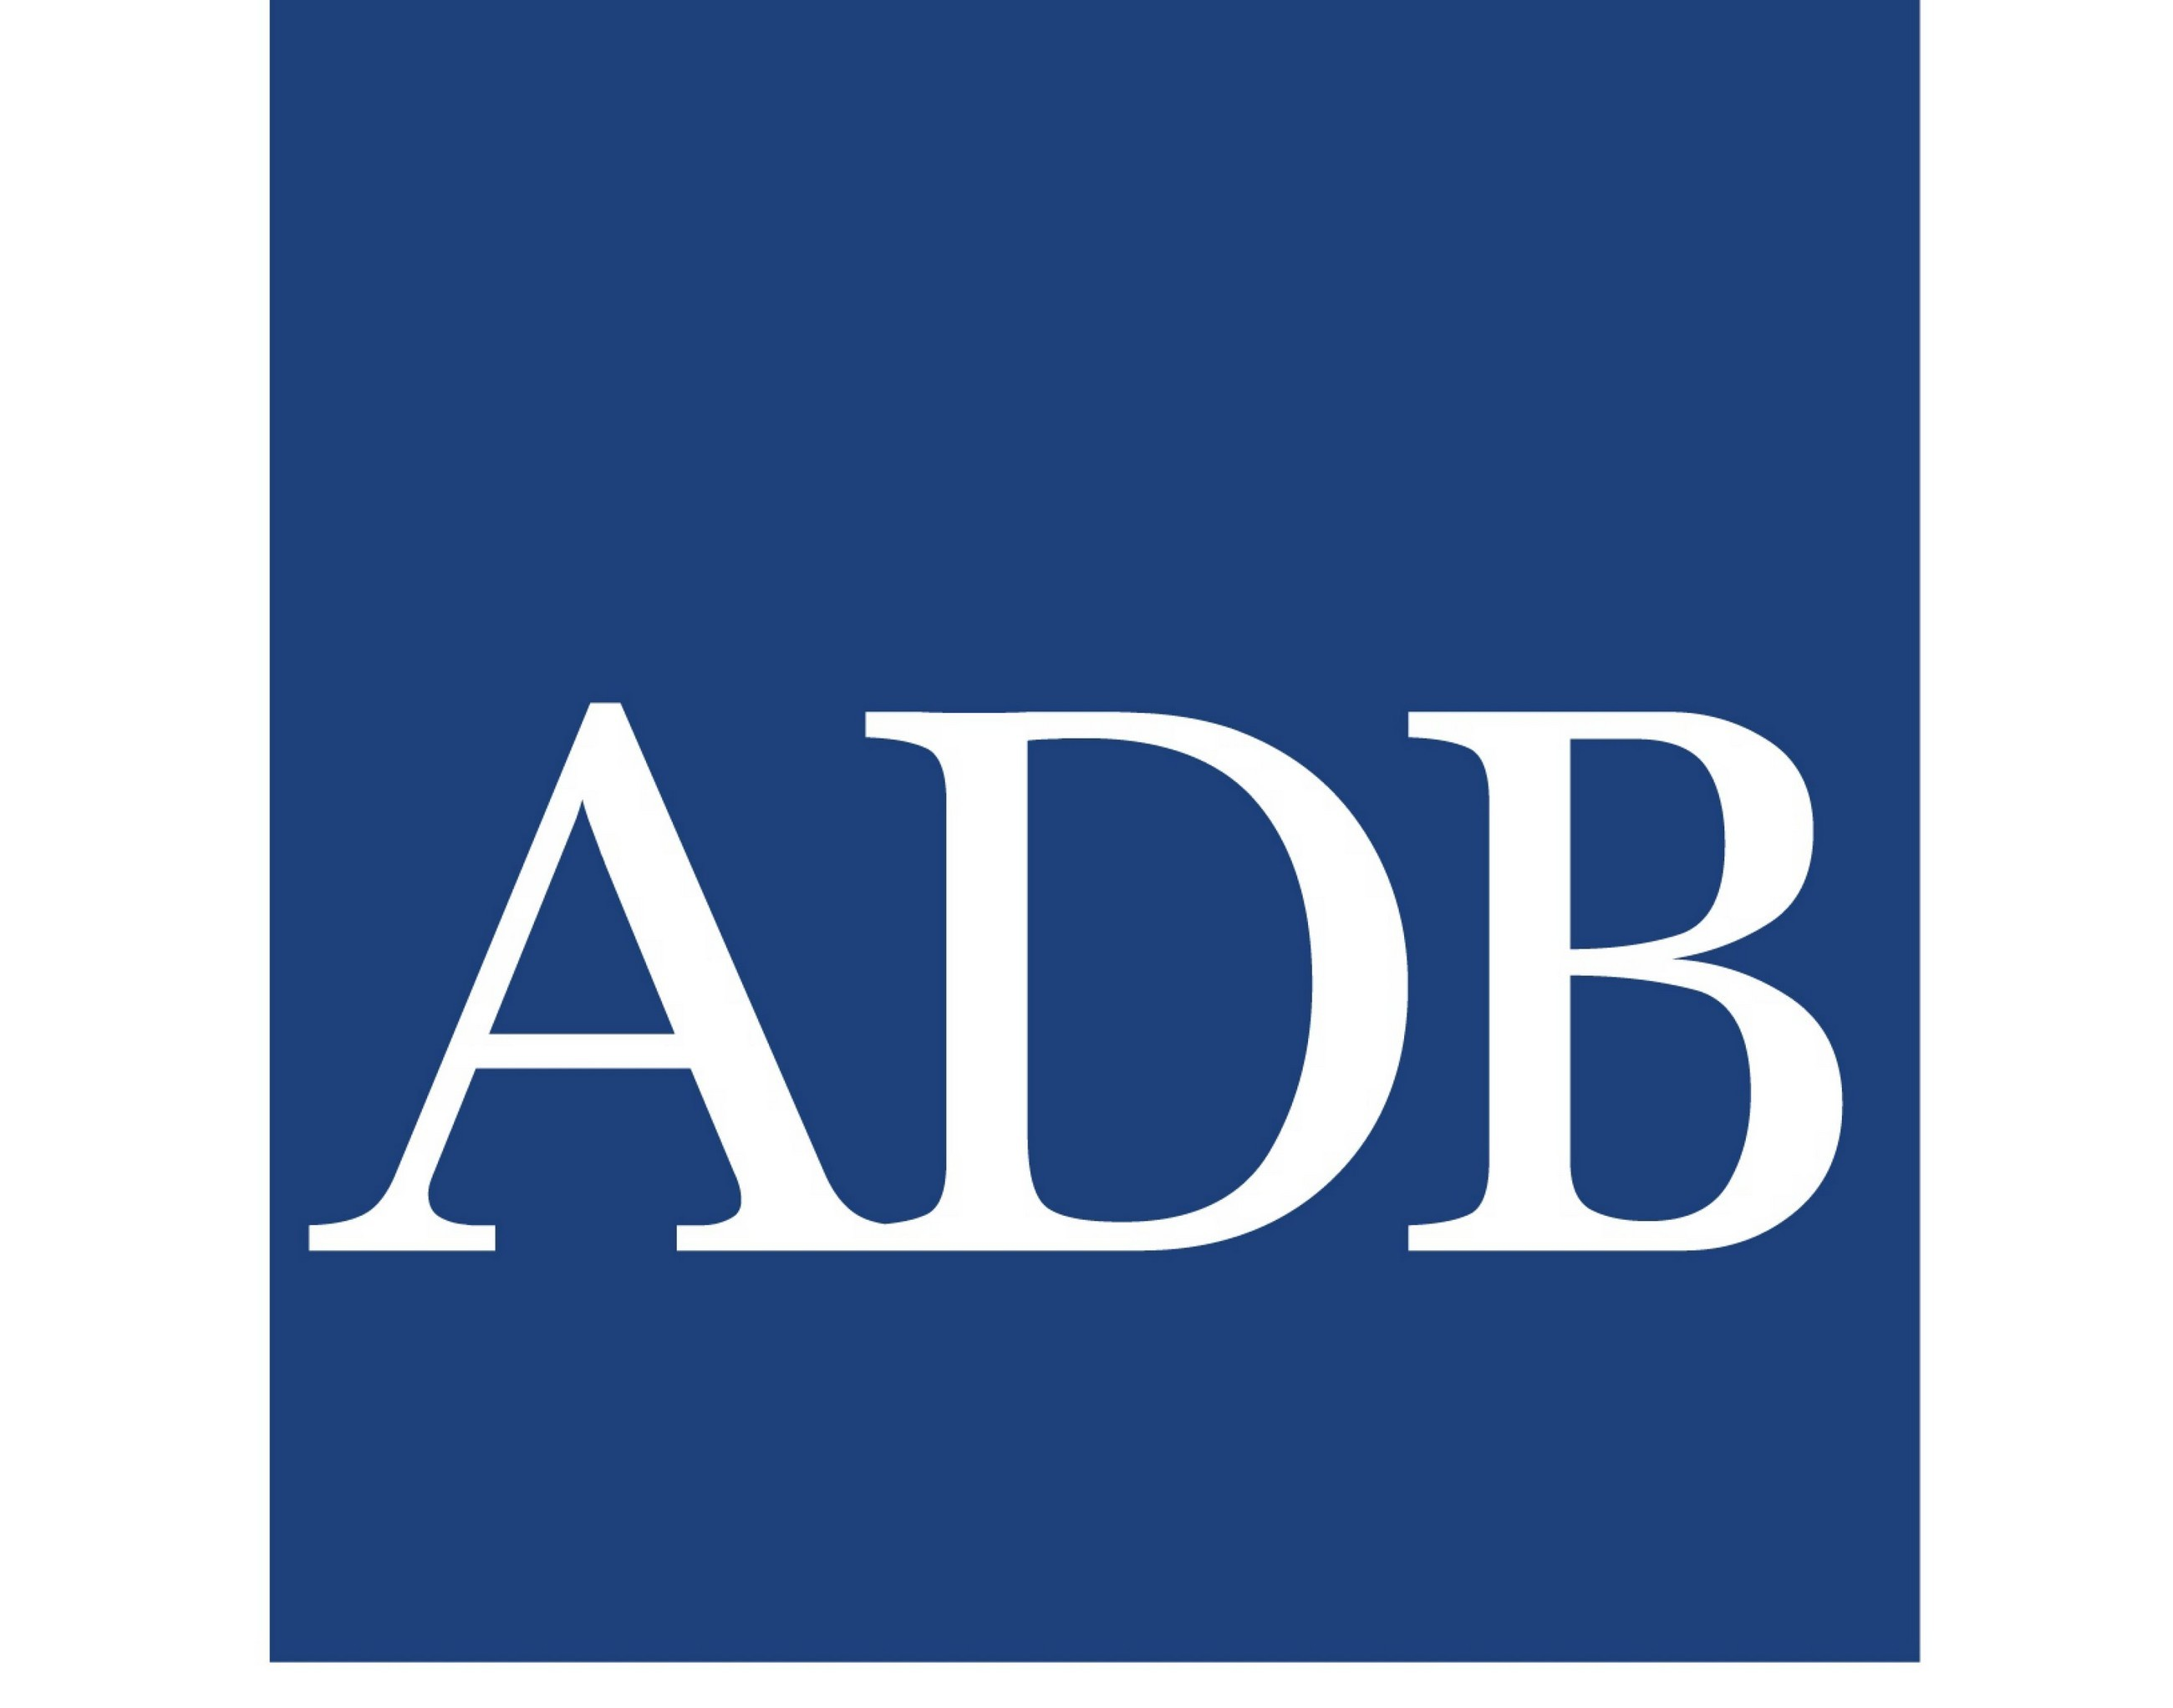 adb asian development bank logo